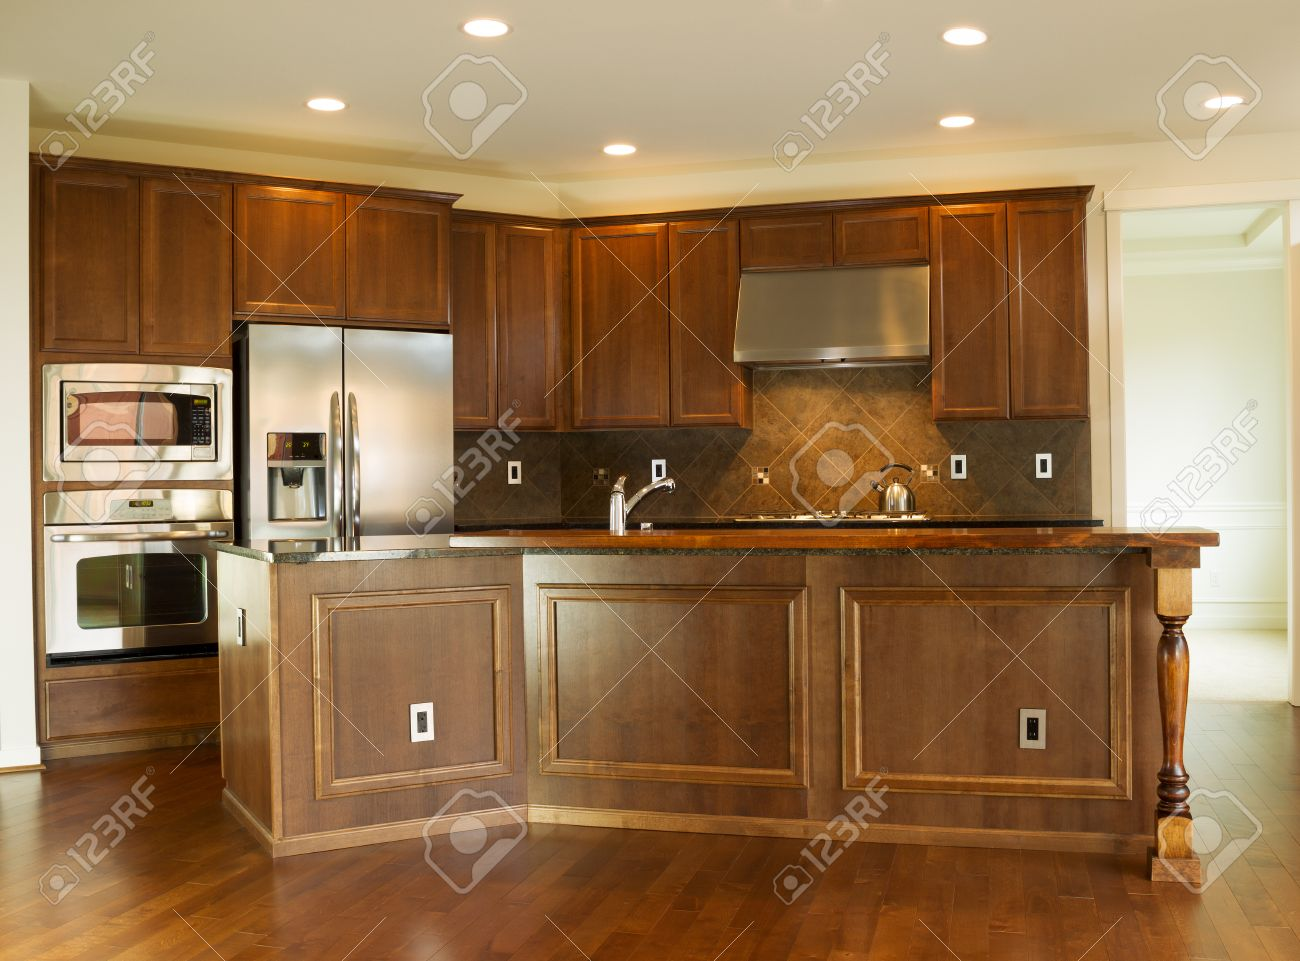 Horizontal Photo Of A Modern Residential Kitchen With Stone Counter Stock Photo Picture And Royalty Free Image Image 26812481